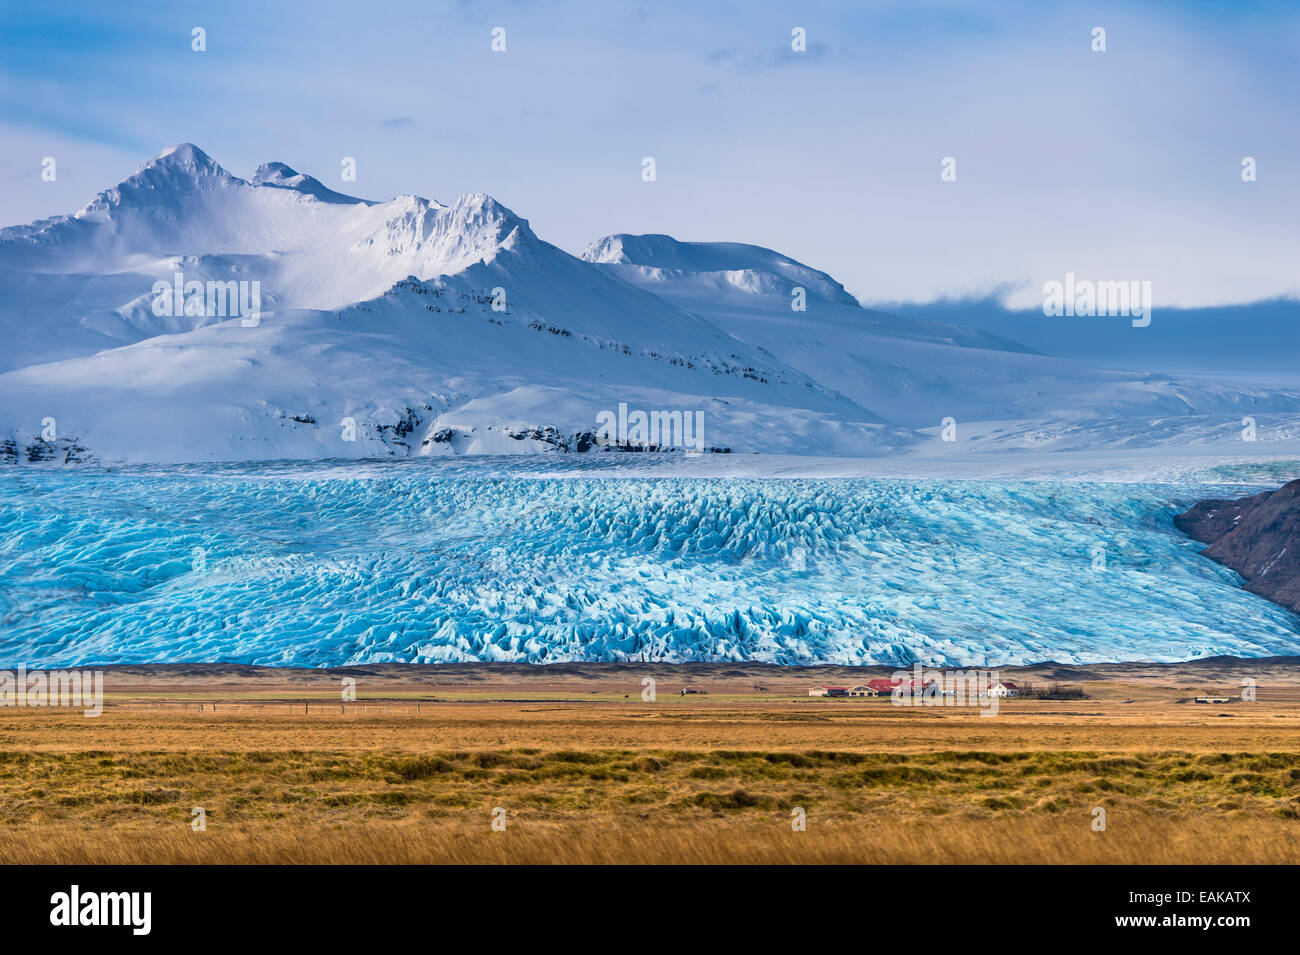 Icelandic farmstead with glacier tongue and snow-covered mountains, Höfn, Iceland Stock Photo